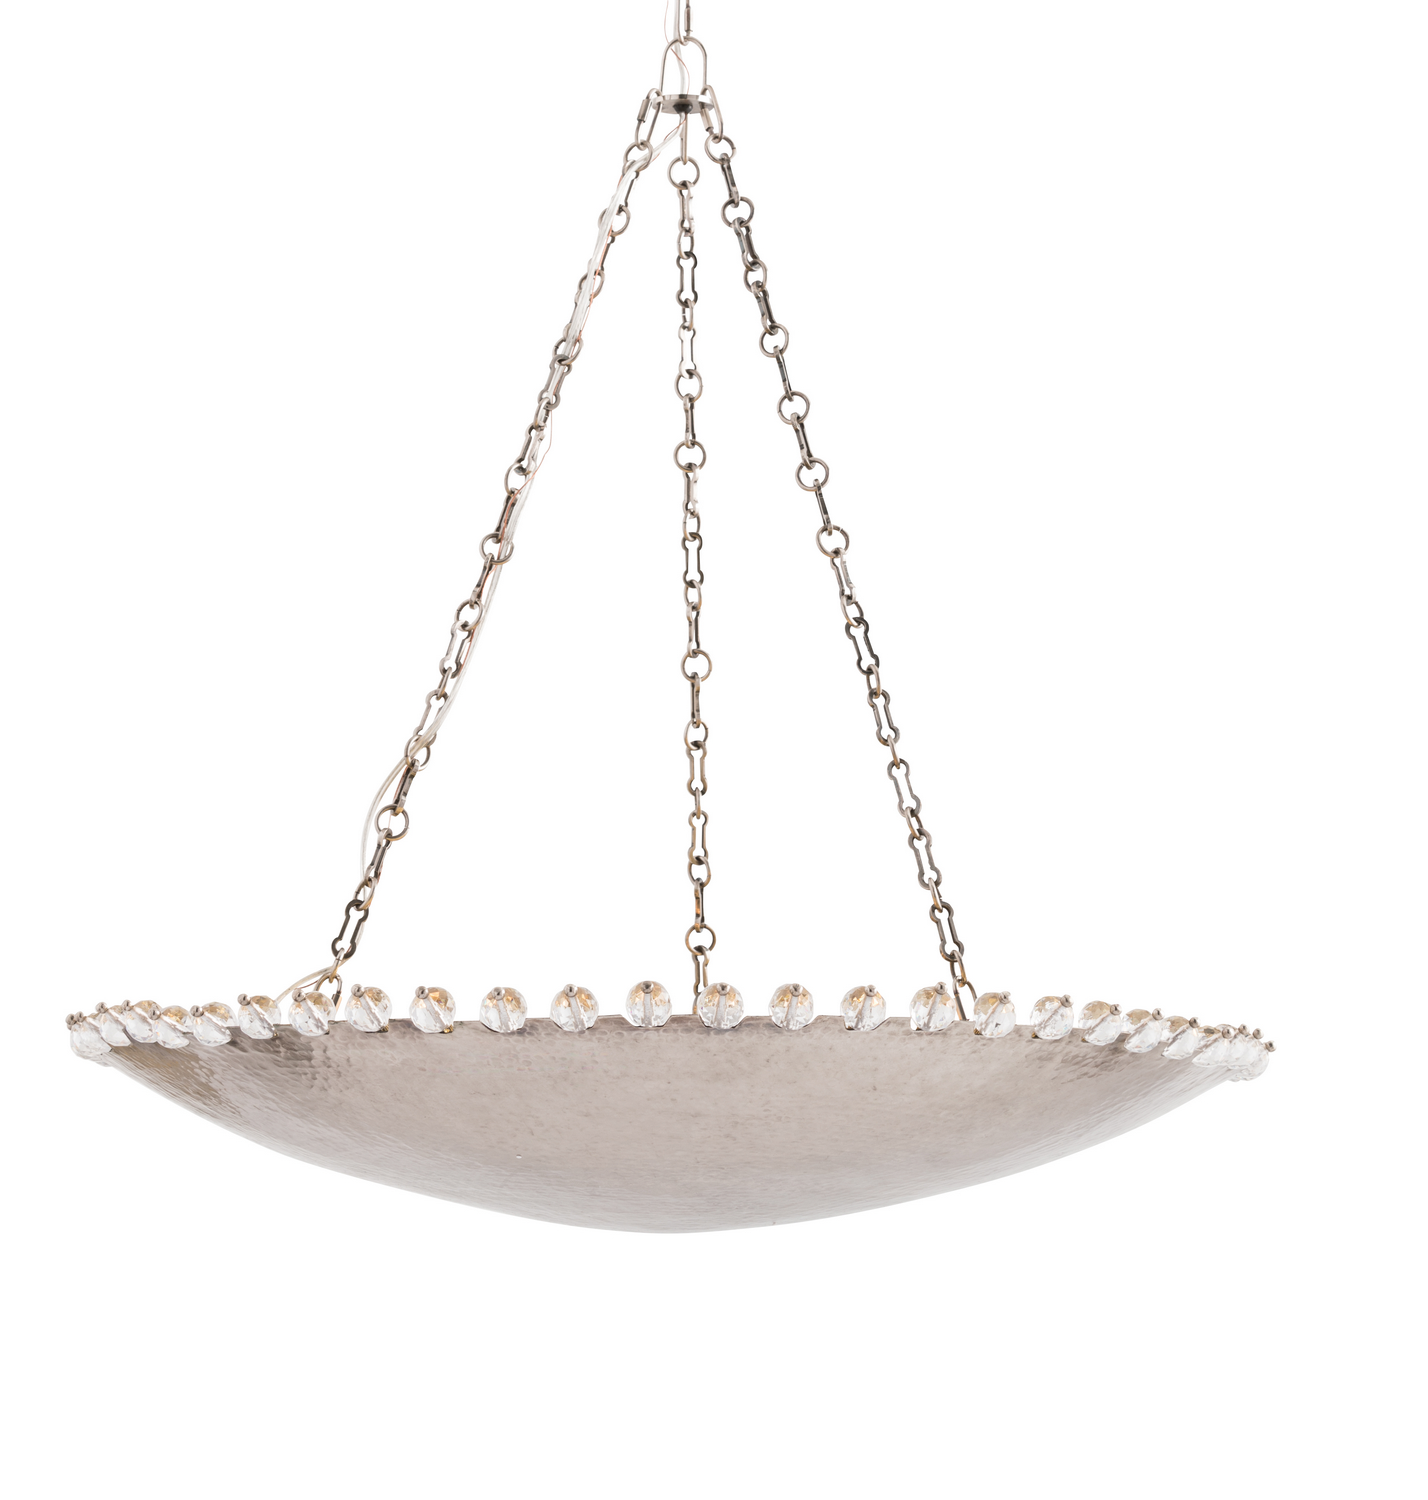 Chandelier from the Gramercy collection by Arteriors 82014